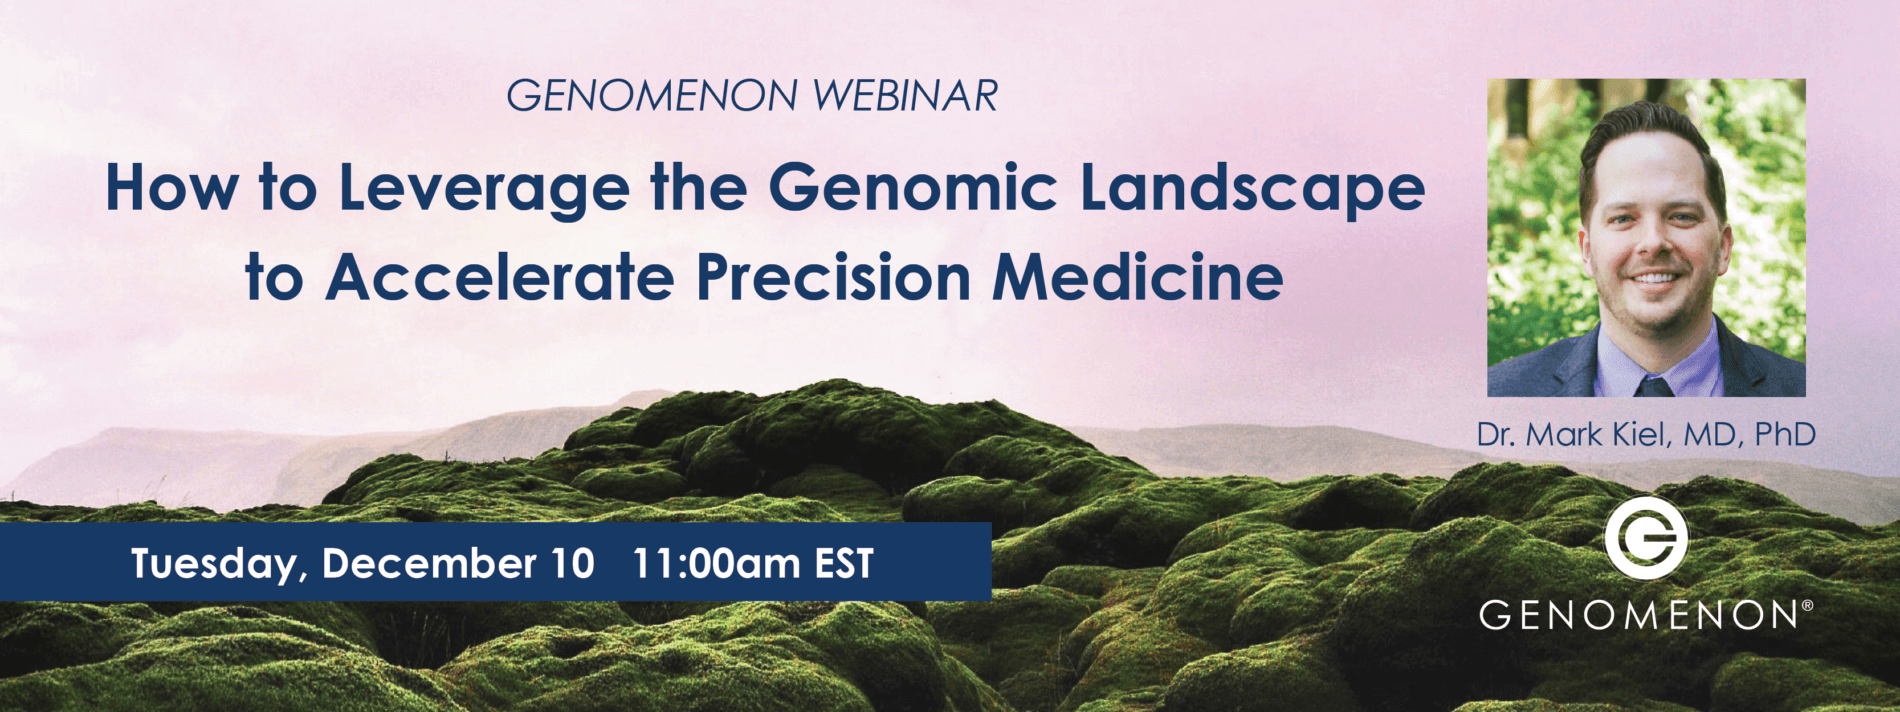 <h2><b>Upcoming Webinar:</h2> </b><Br> <h4><i>How to Leverage the Genomic Landscape to Accelerate Precision Medicine</h4></i>Tuesday, December 10, 2019<br><br>